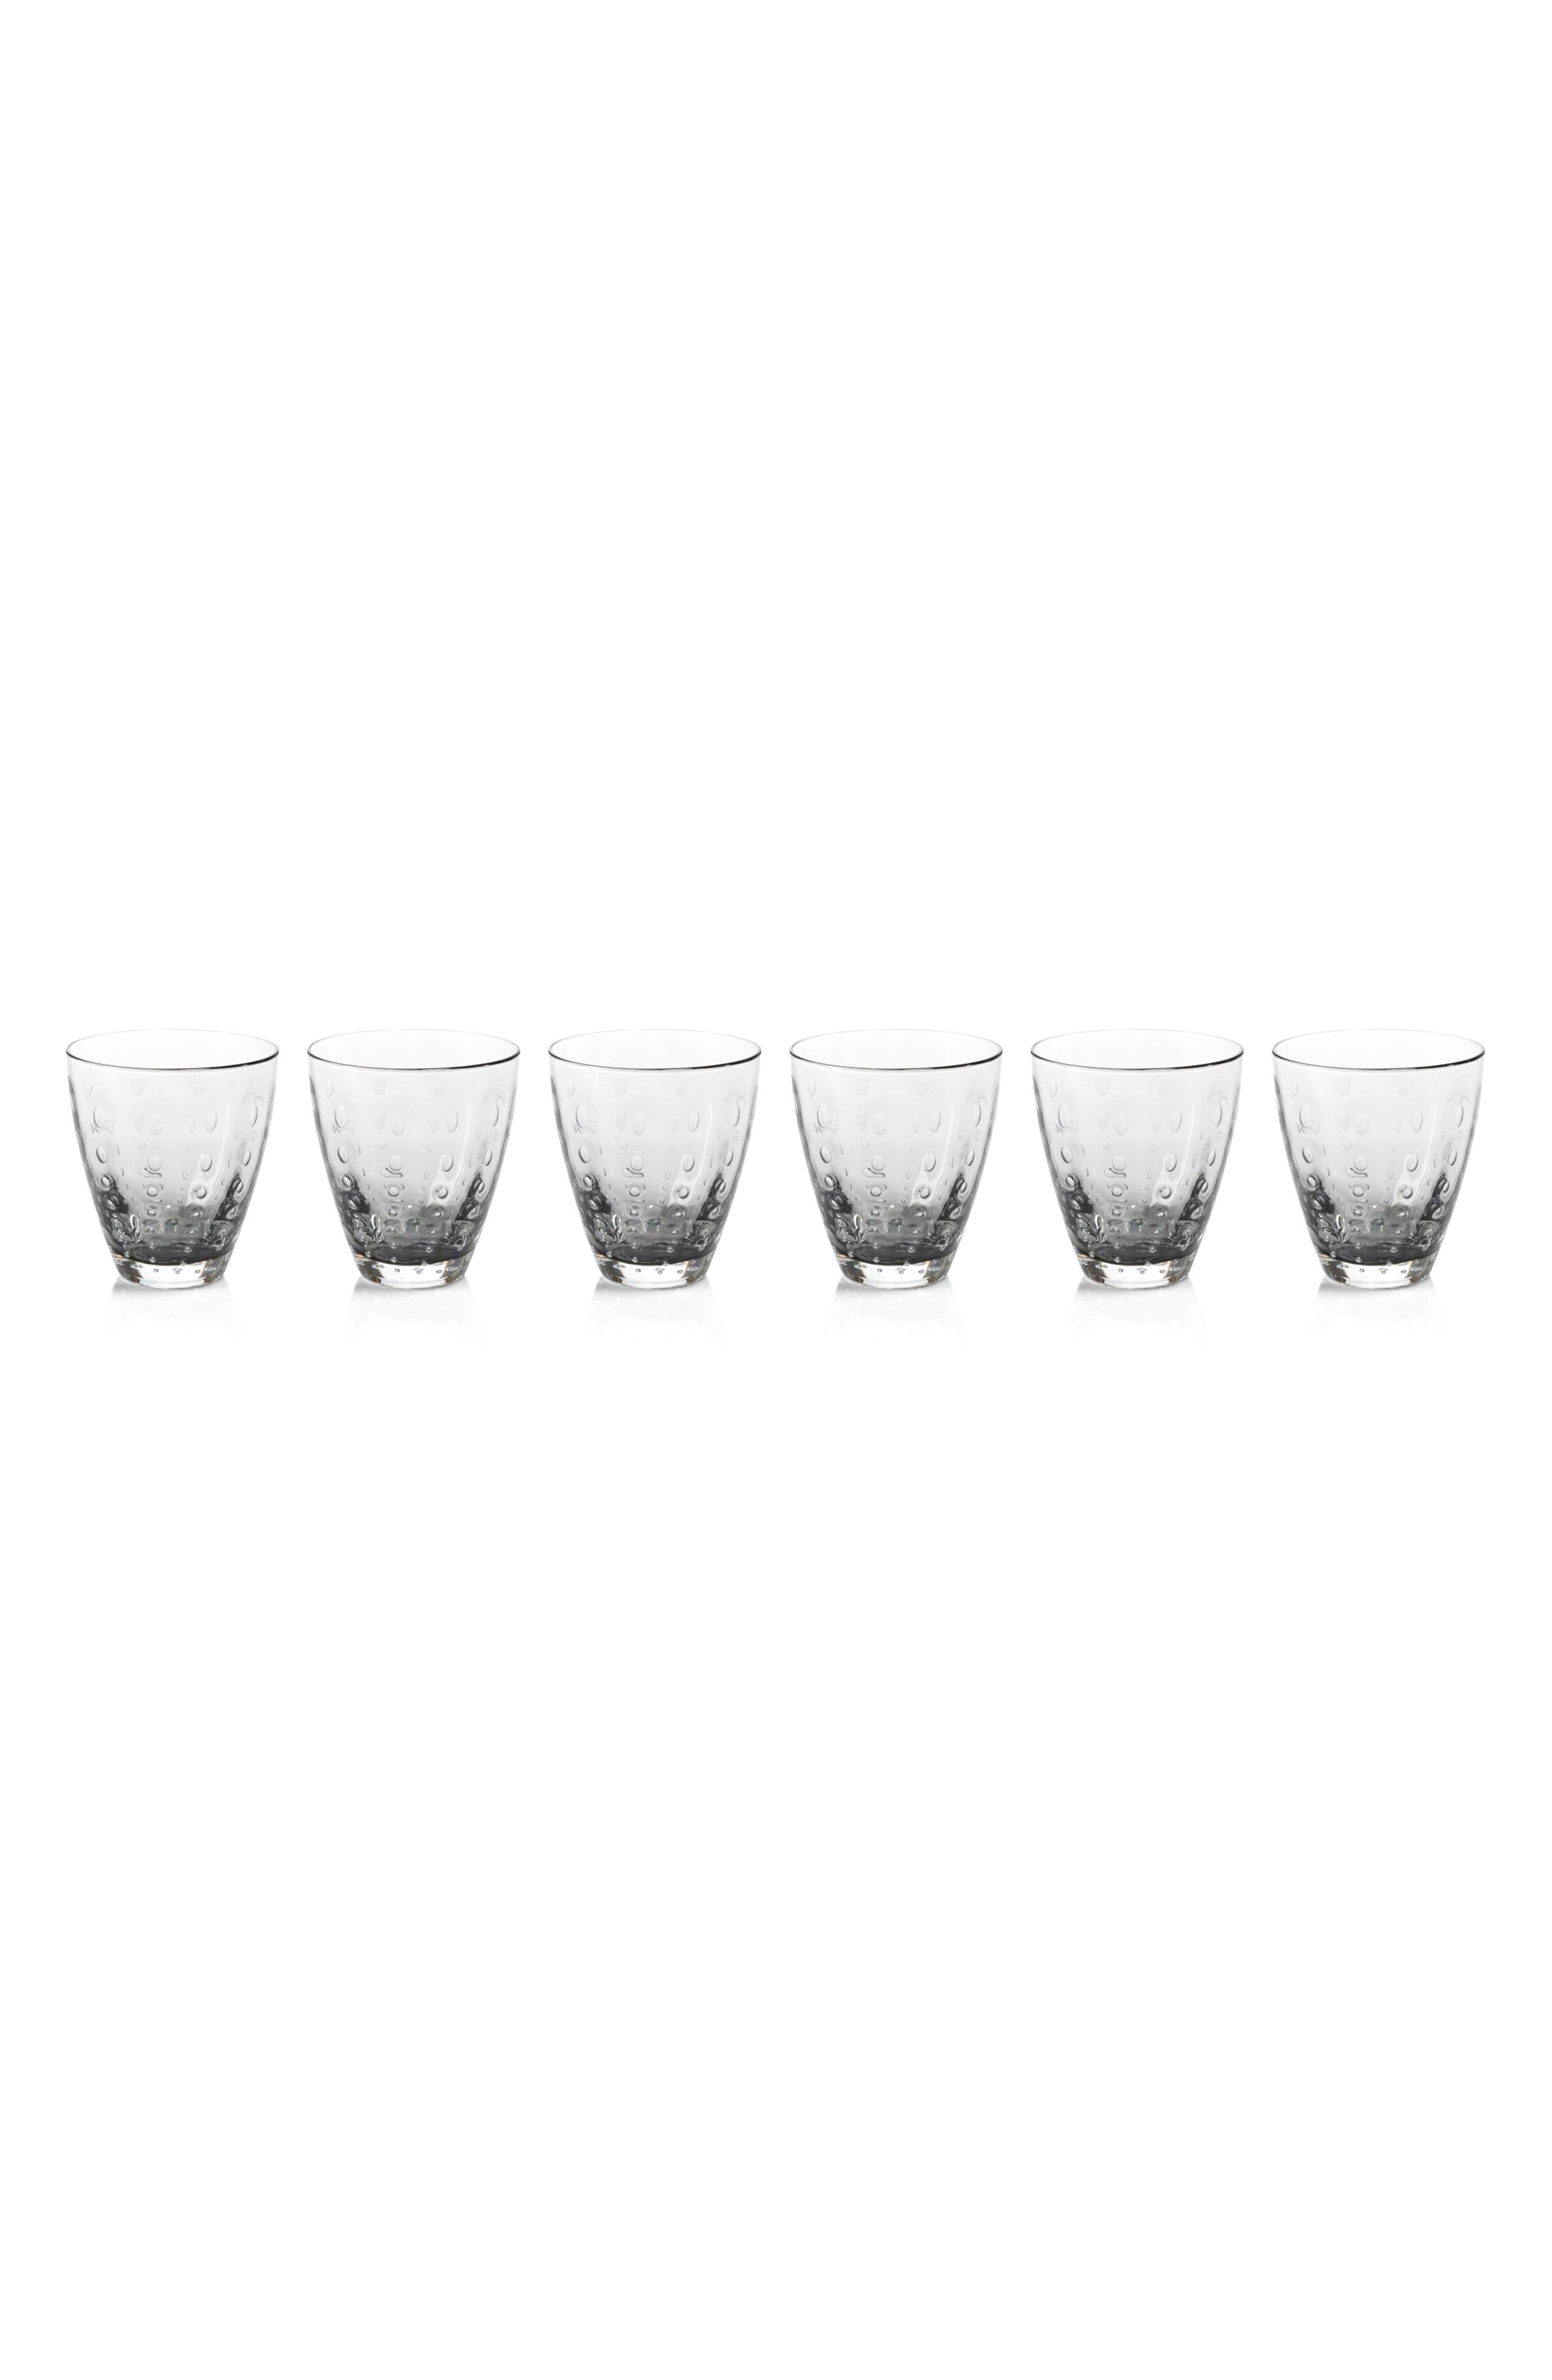 Bubbled Set of 6 Double Old Fashioned Glasses,                             Main thumbnail 1, color,                             Clear